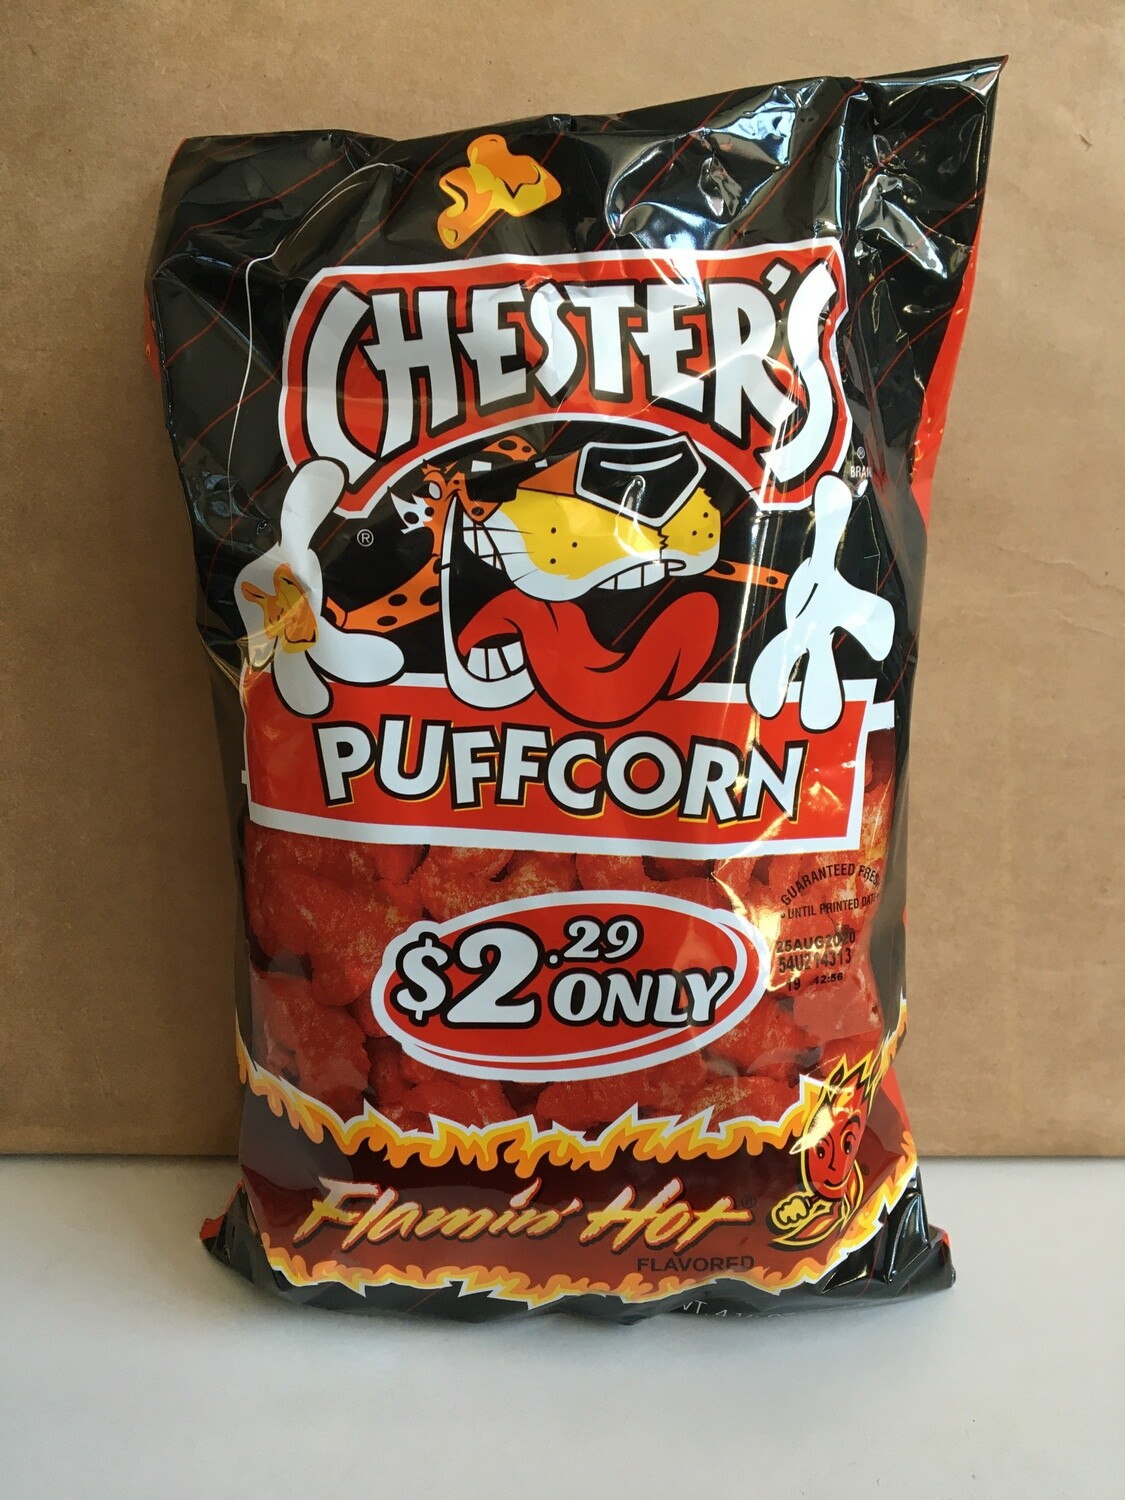 Snack / Popcorn / Chester's Flamin' Hot Puffcorn 4.25 oz.